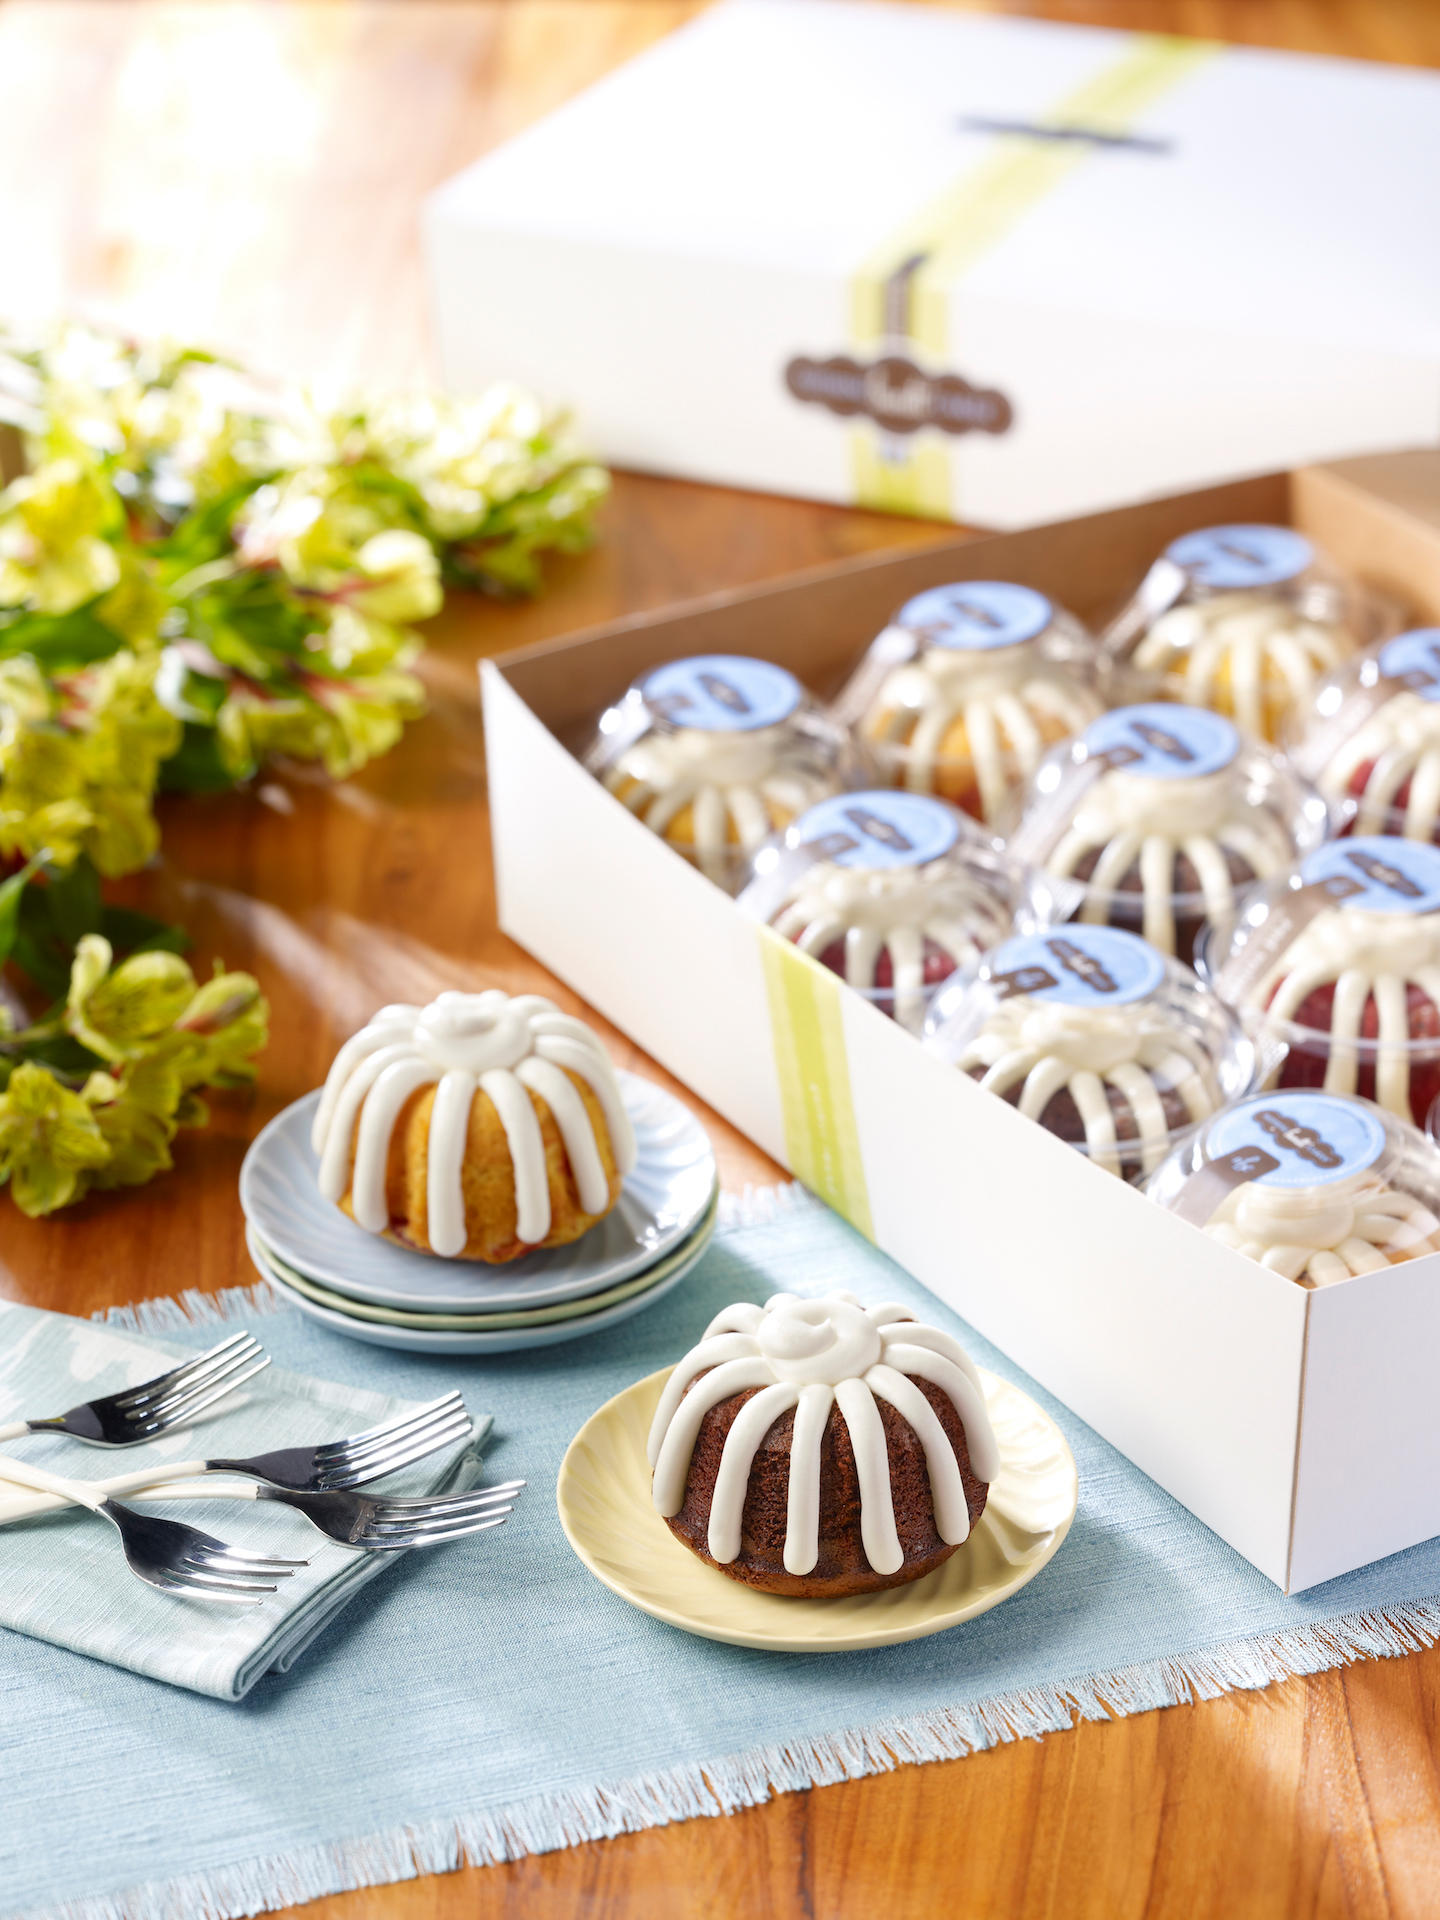 Nothing Bundt Cakes image 1